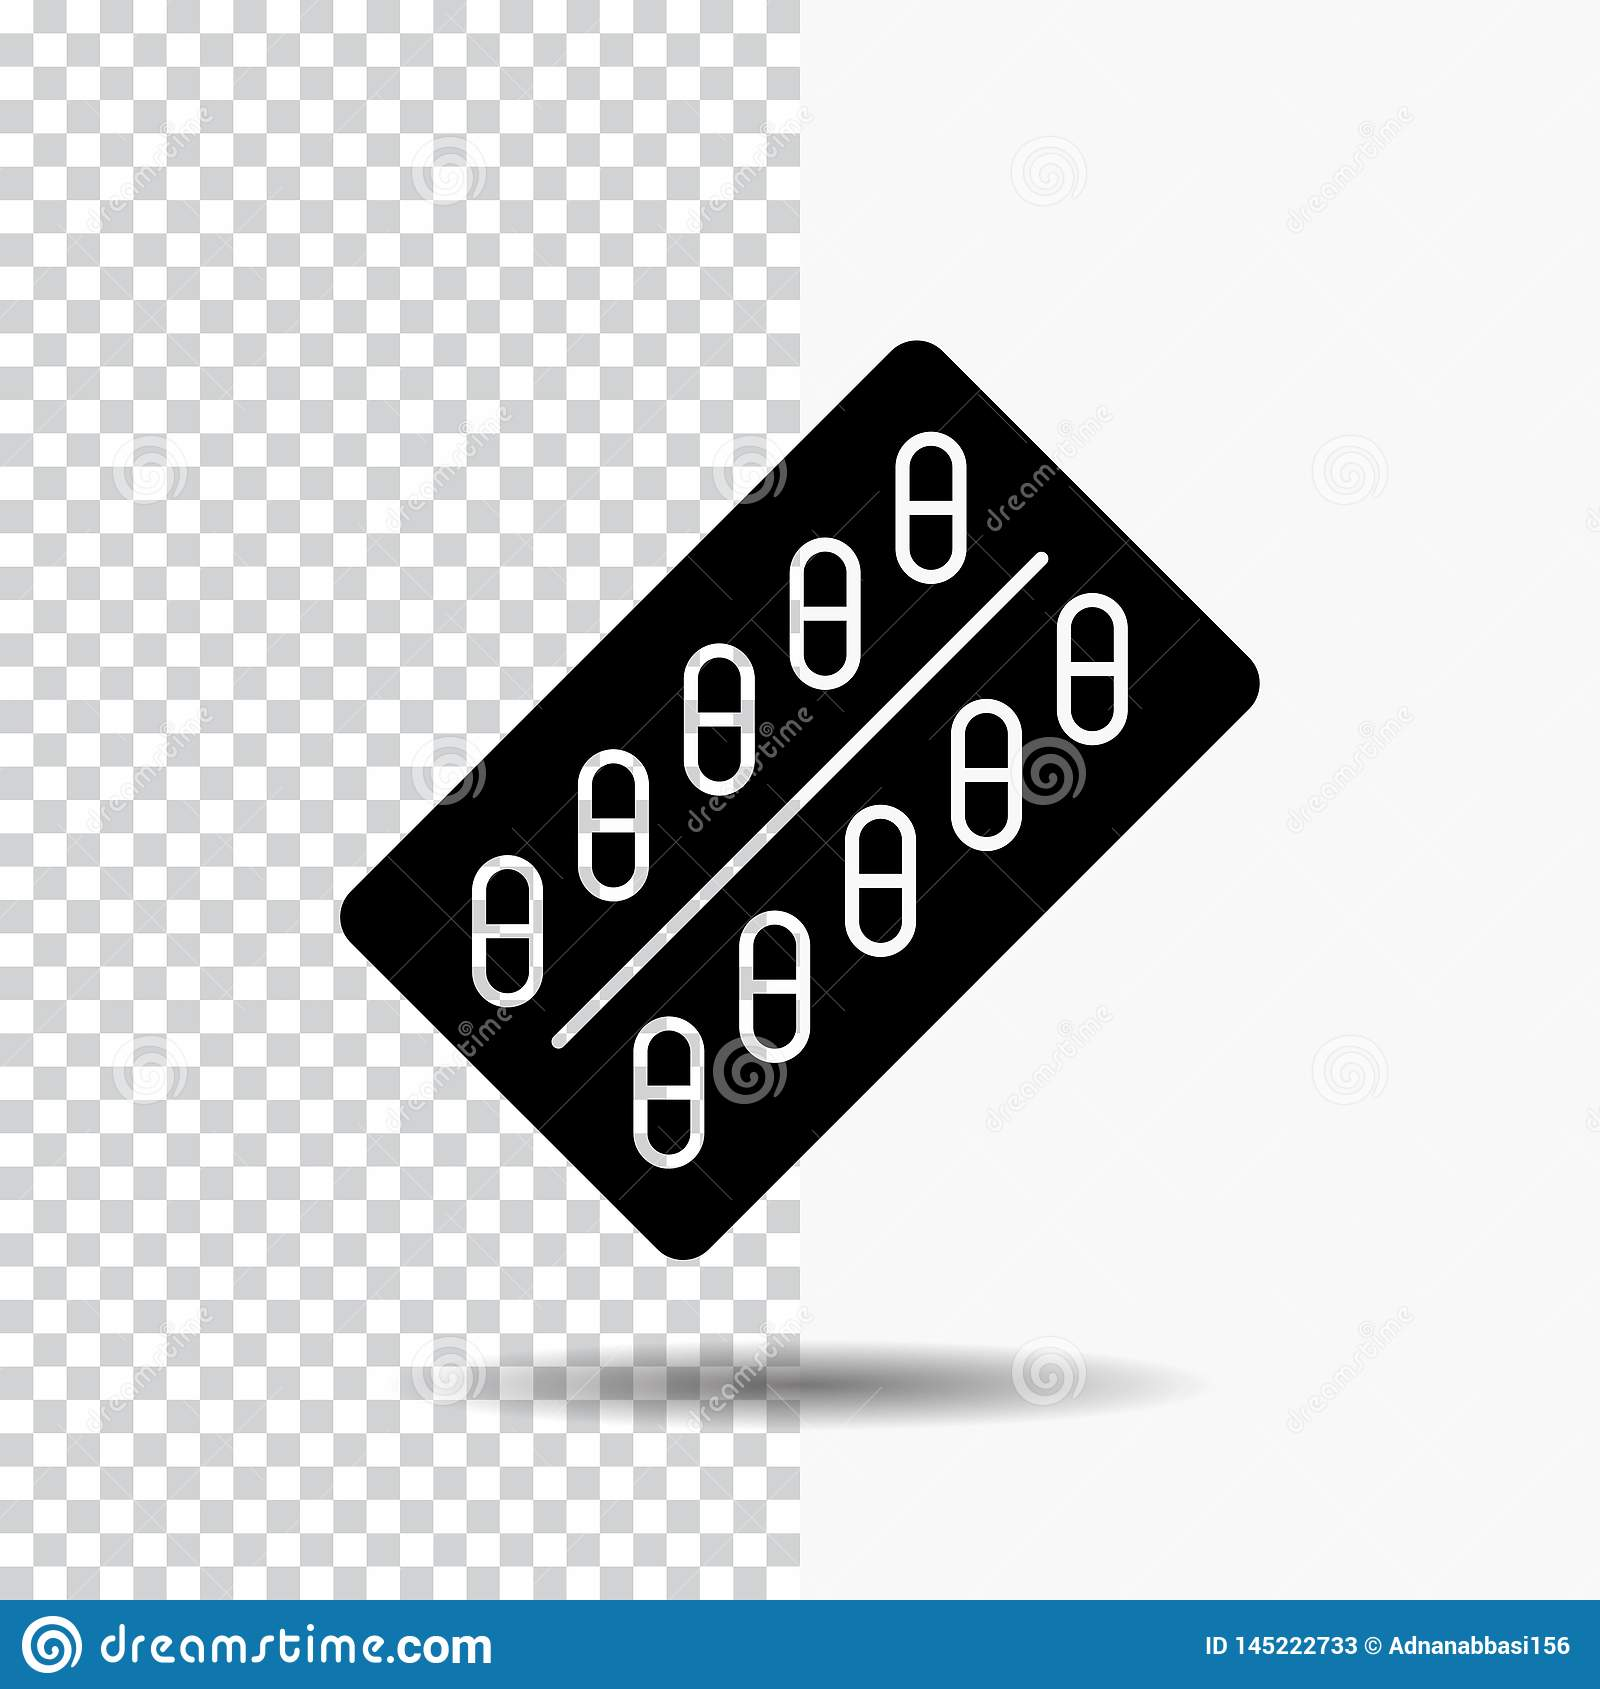 drugs transparent background stock illustrations 649 drugs transparent background stock illustrations vectors clipart dreamstime https www dreamstime com medicine pill drugs tablet packet glyph icon transparent background black icon medicine pill drugs tablet packet glyph icon image145222733